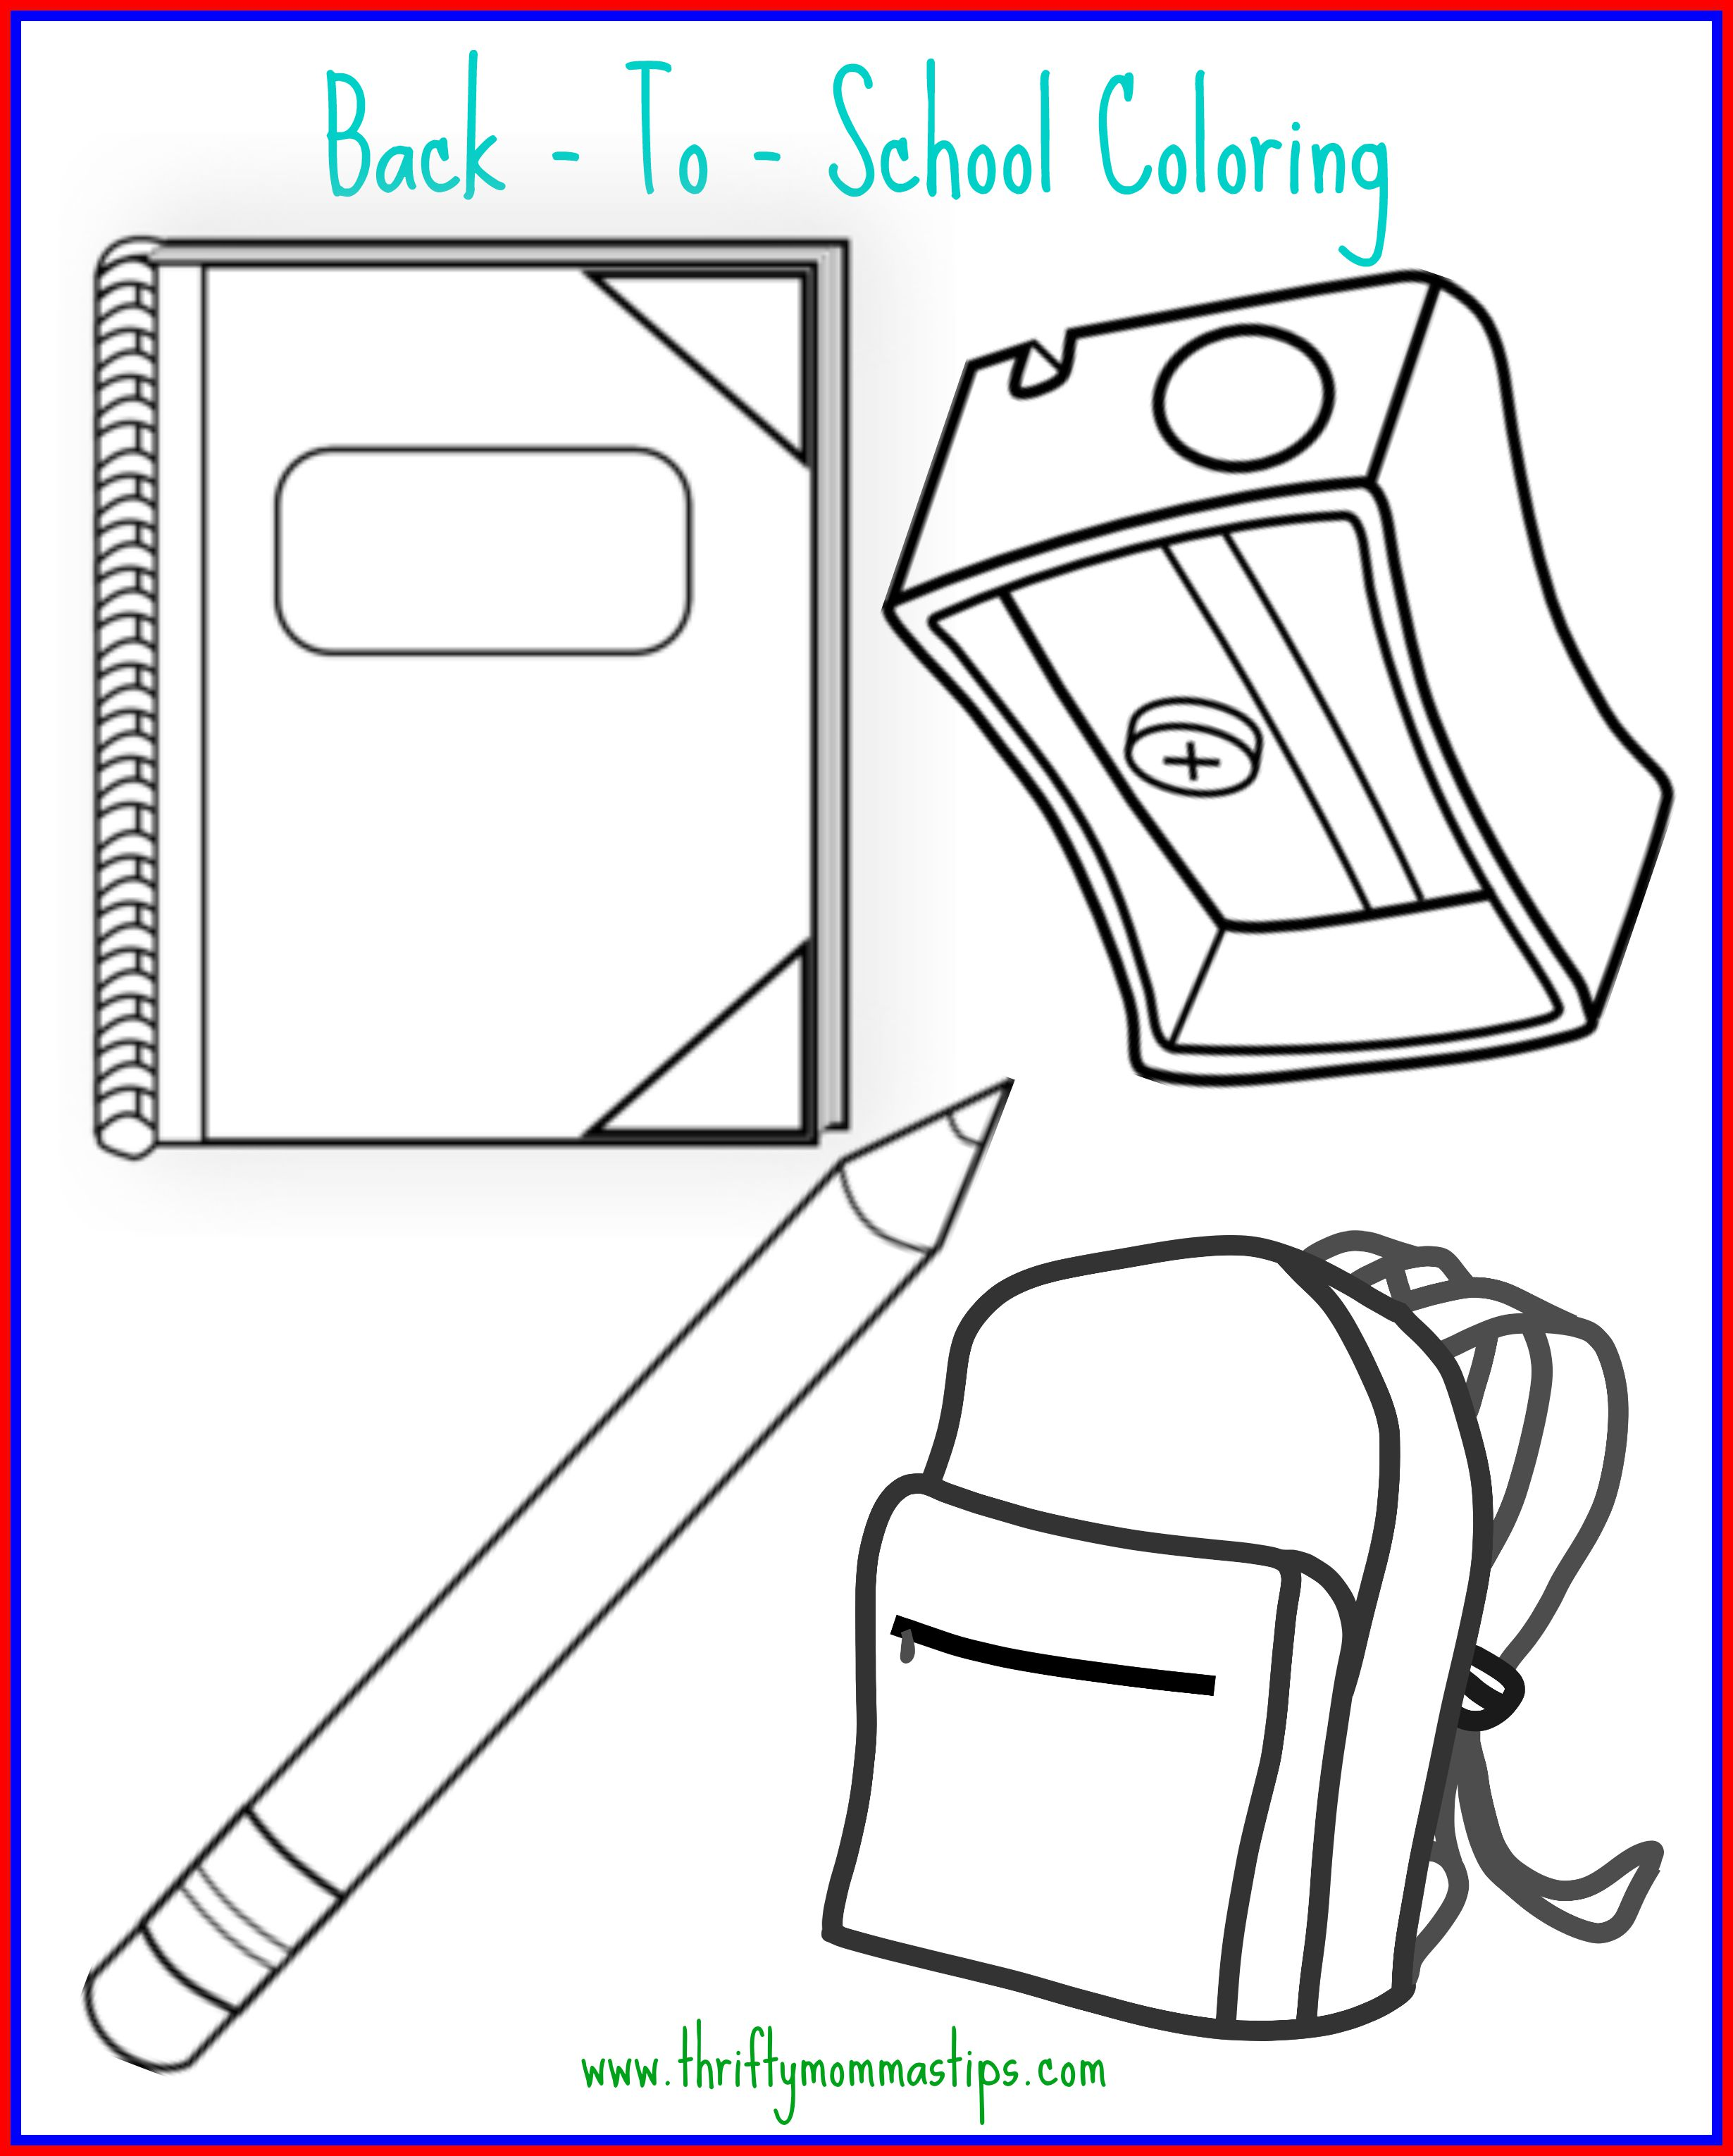 Back to School Coloring Page